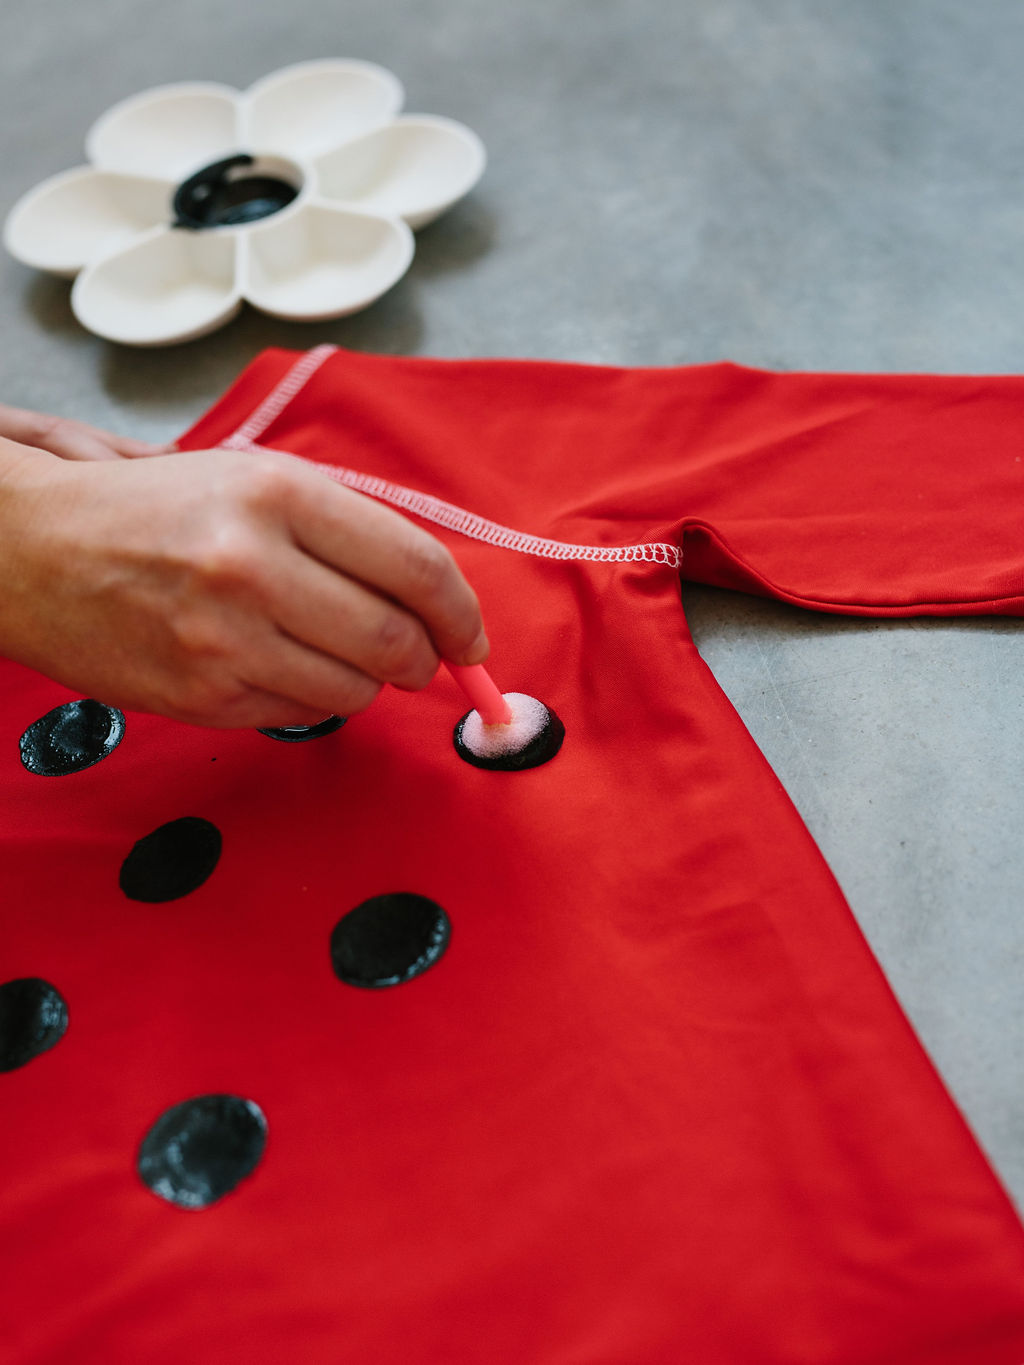 Placing dots on the miraculous ladybug costume